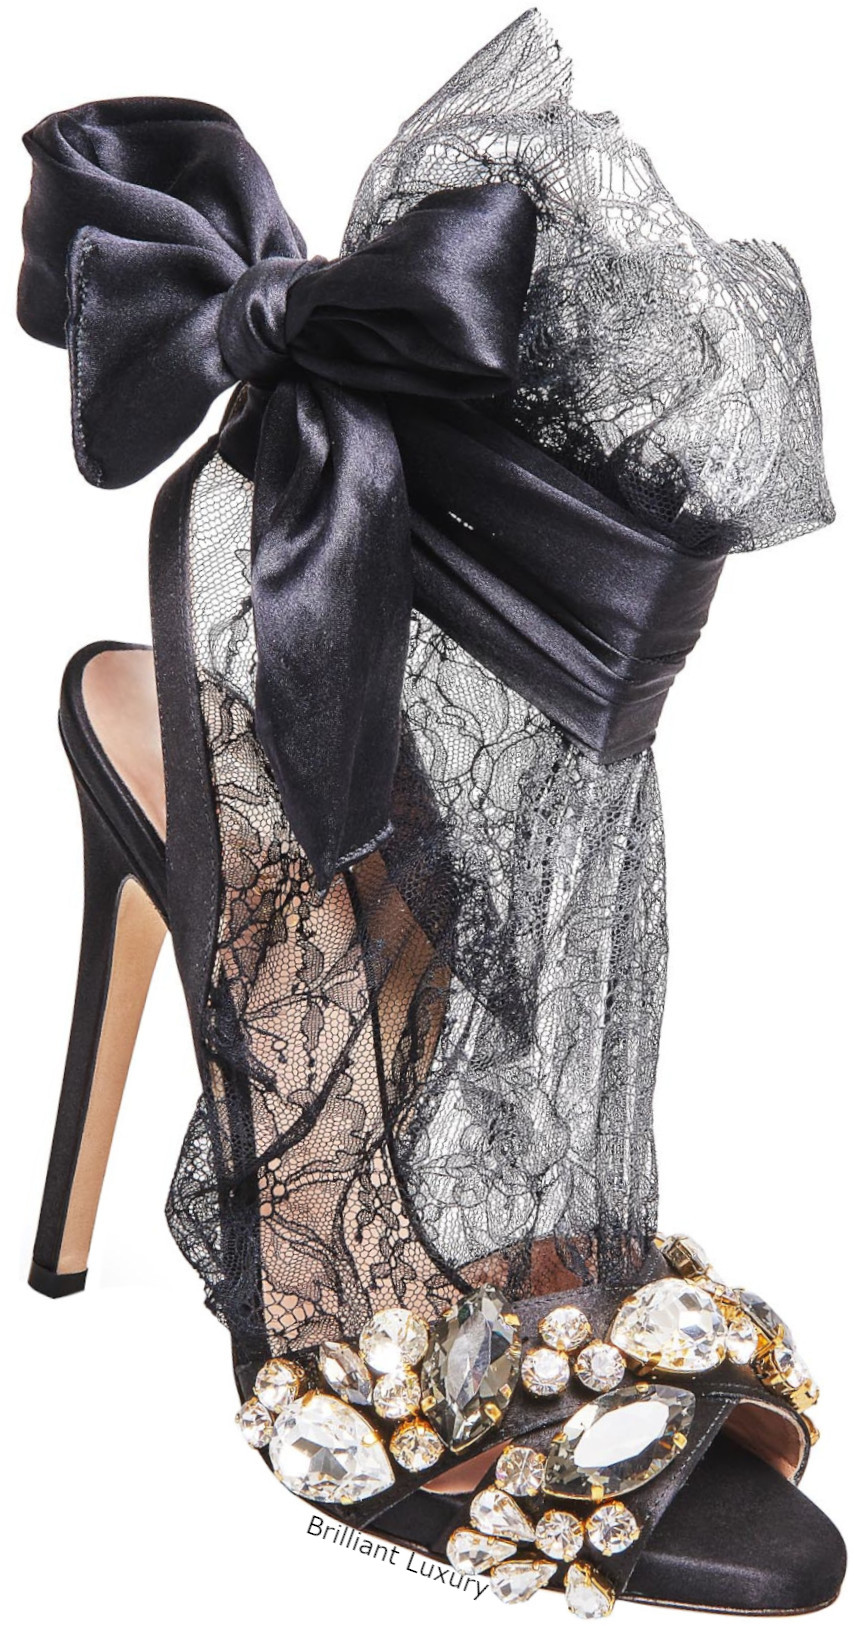 Gedebe satin lace sandals in black